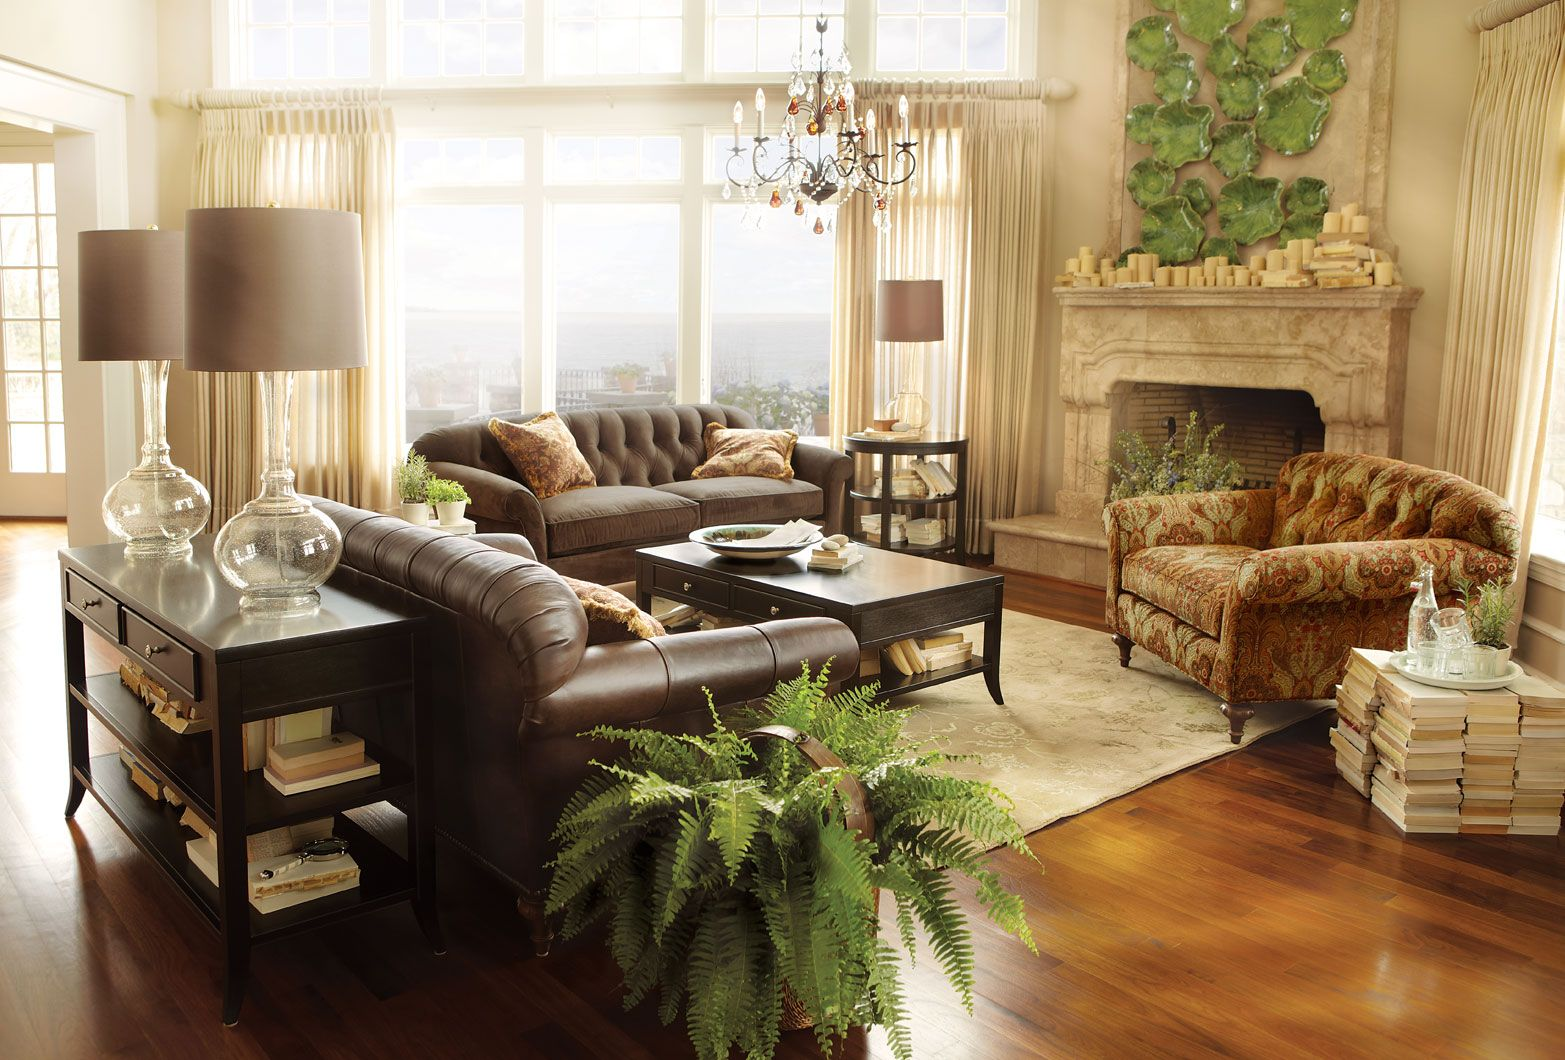 who makes arhaus leather sofas repairing sofa cushion i love this room - which me think we're not so stuck ...